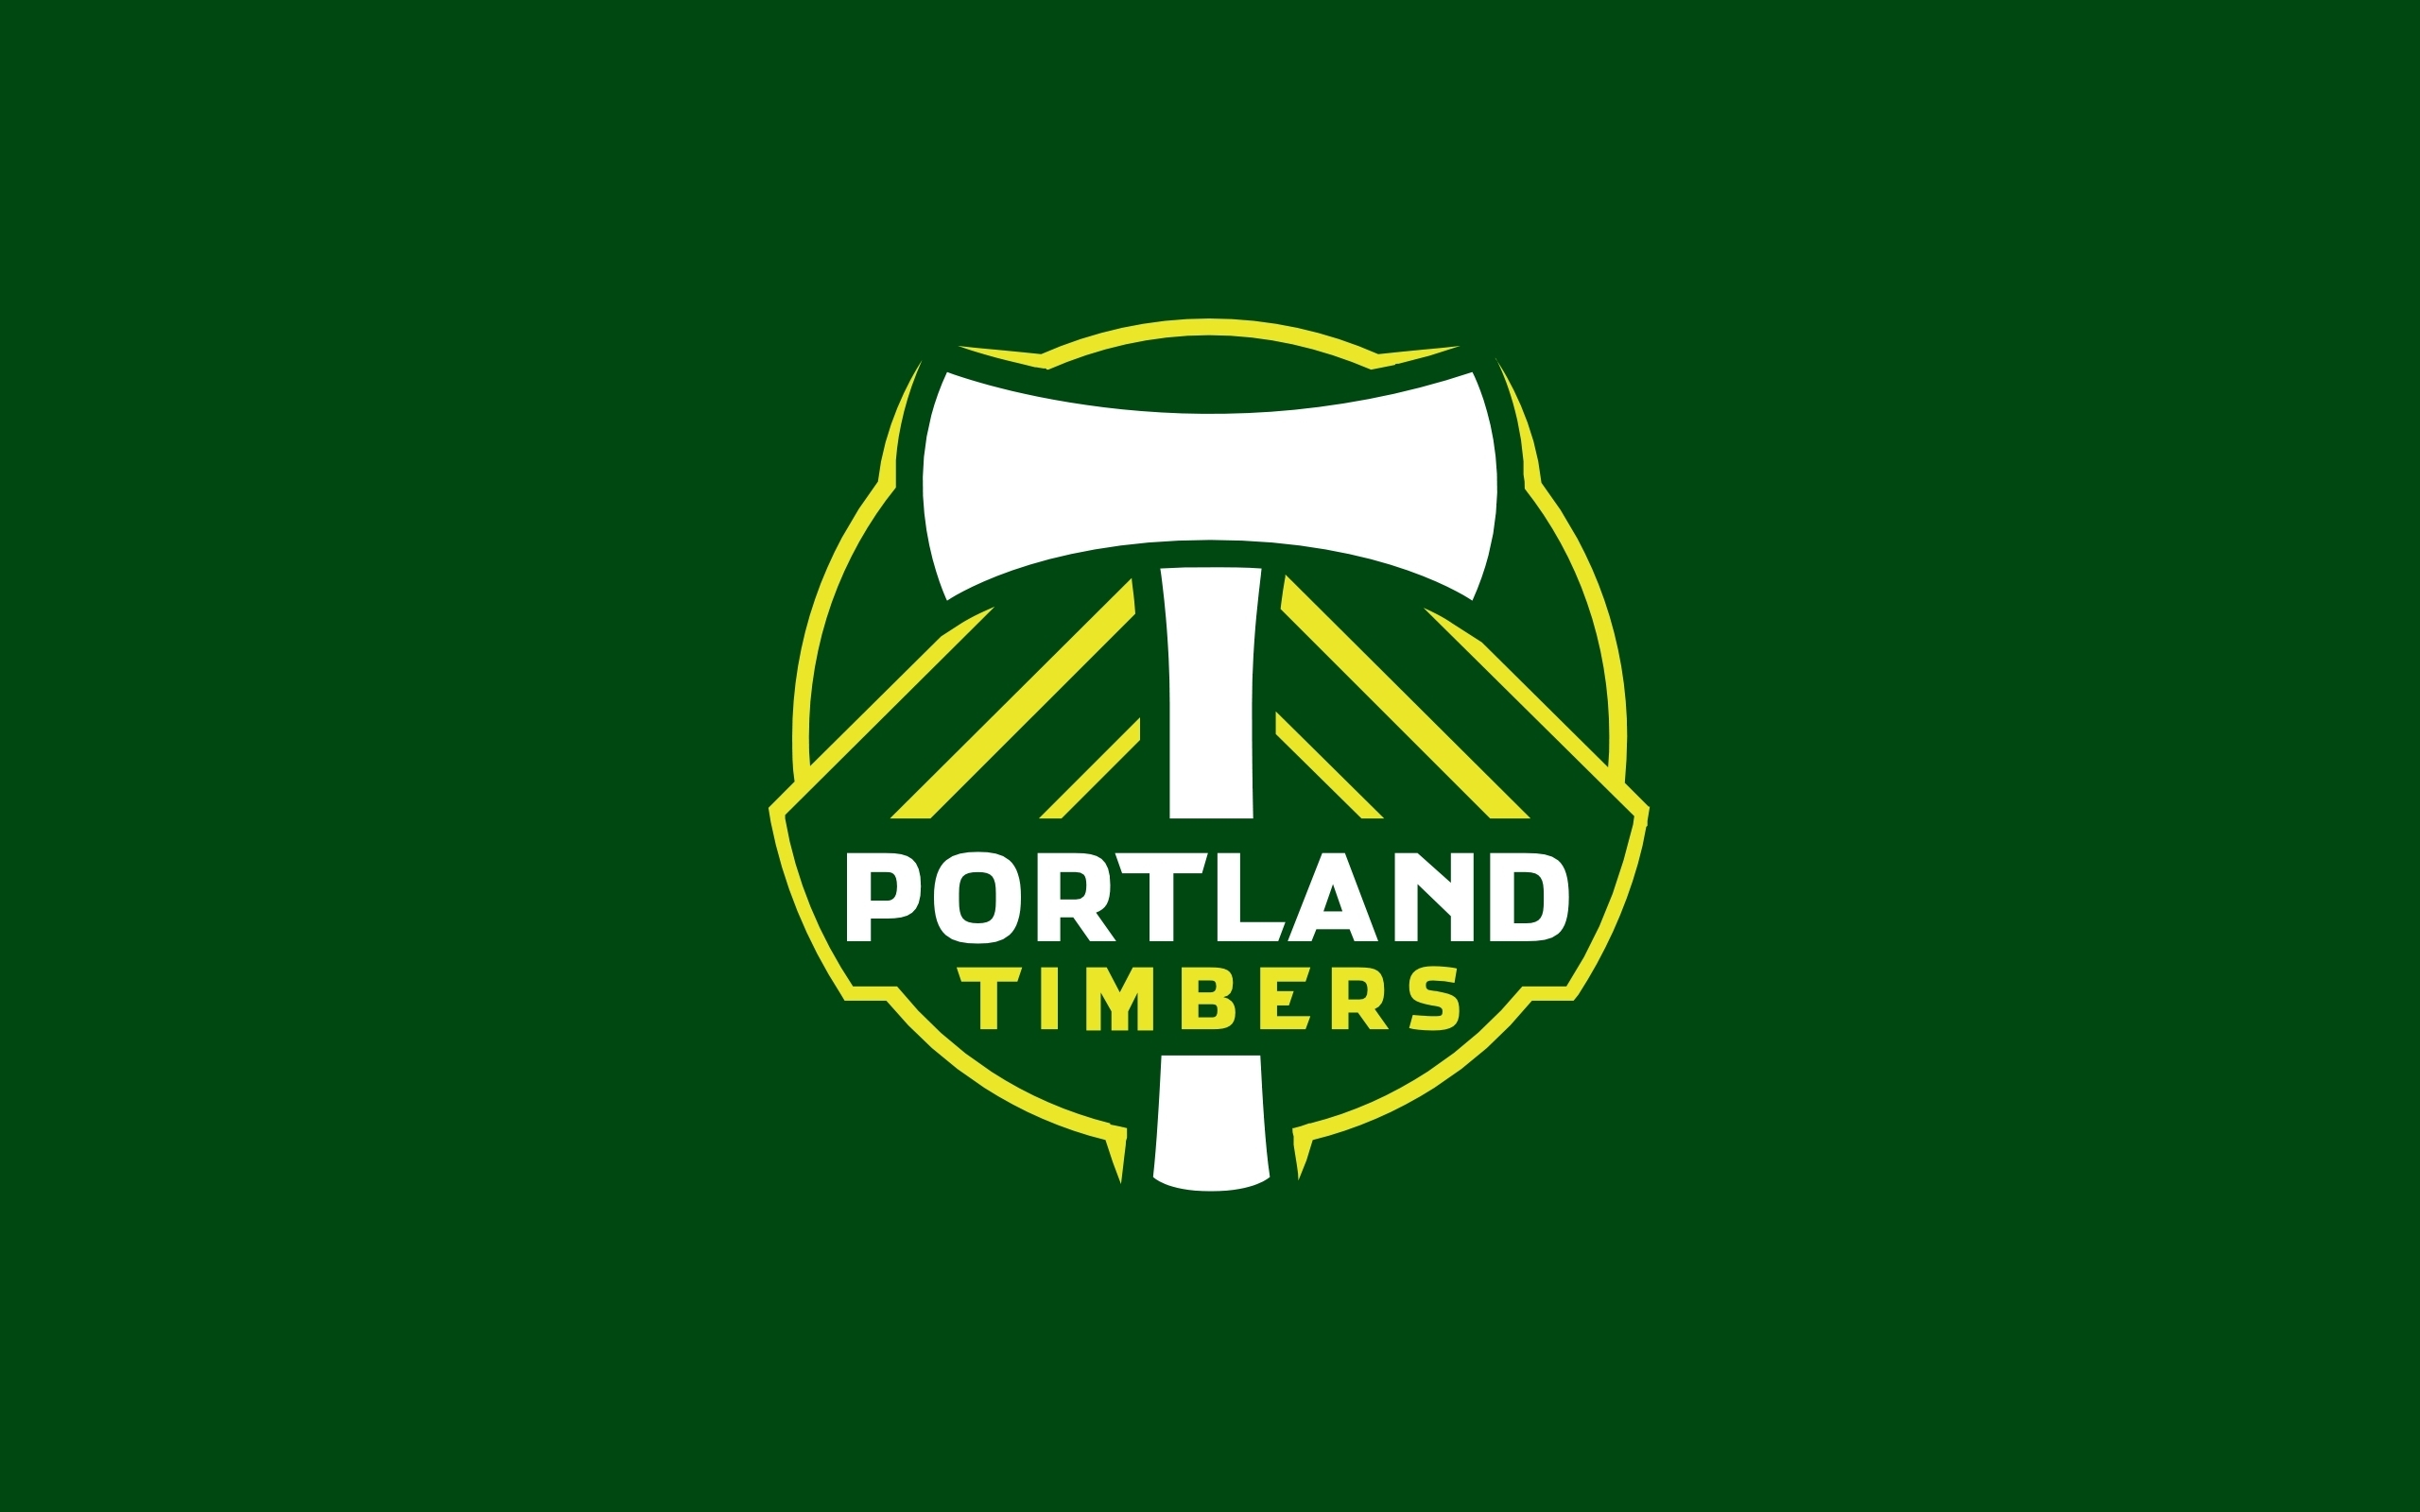 2560x1600 - Portland Timbers Wallpapers 21